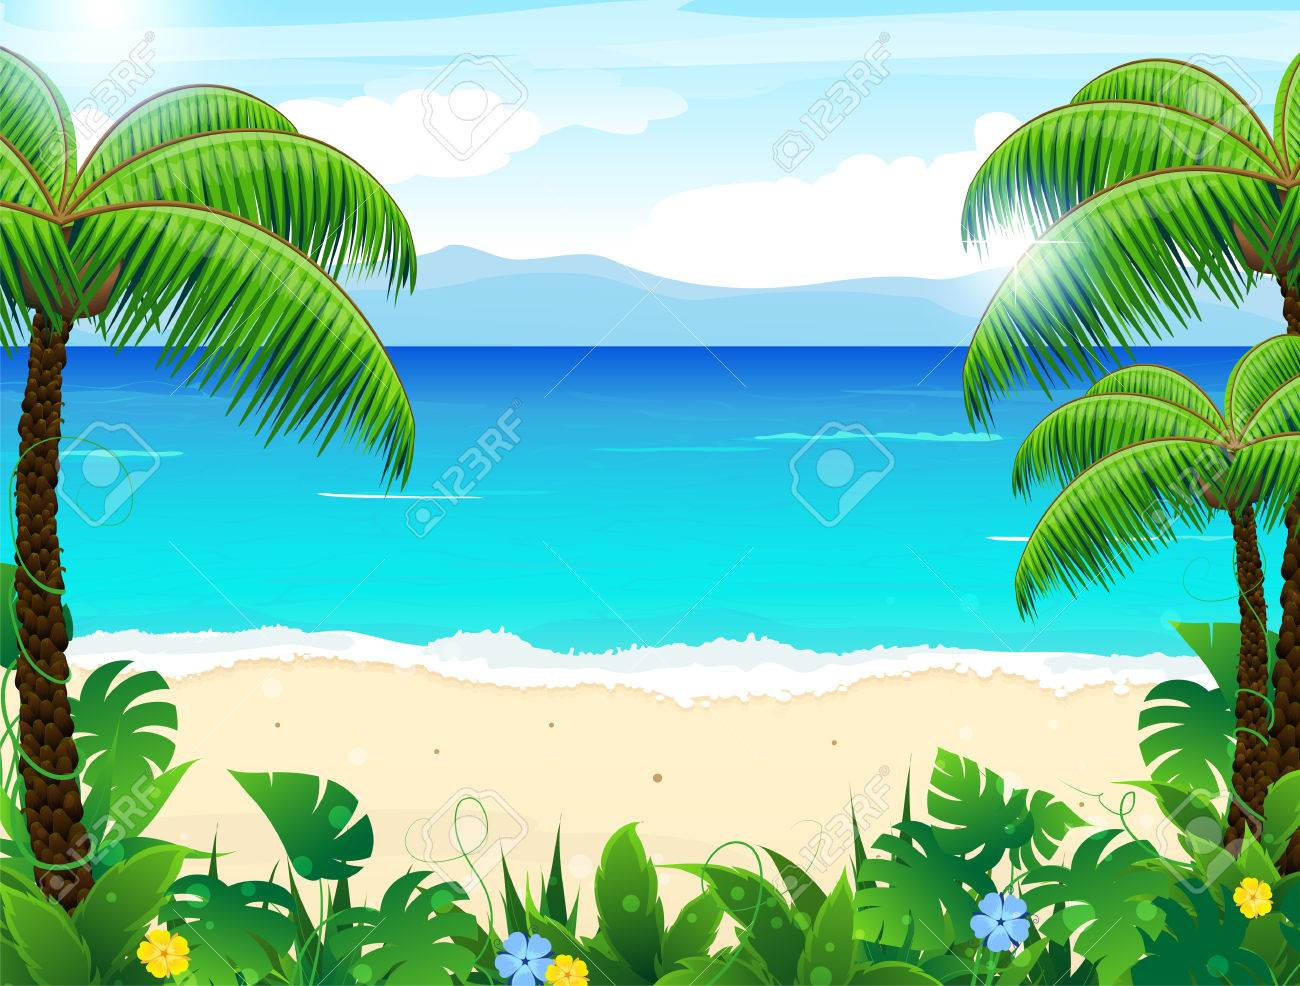 Sandy coast with palm trees and tropical vegetation - 41367267